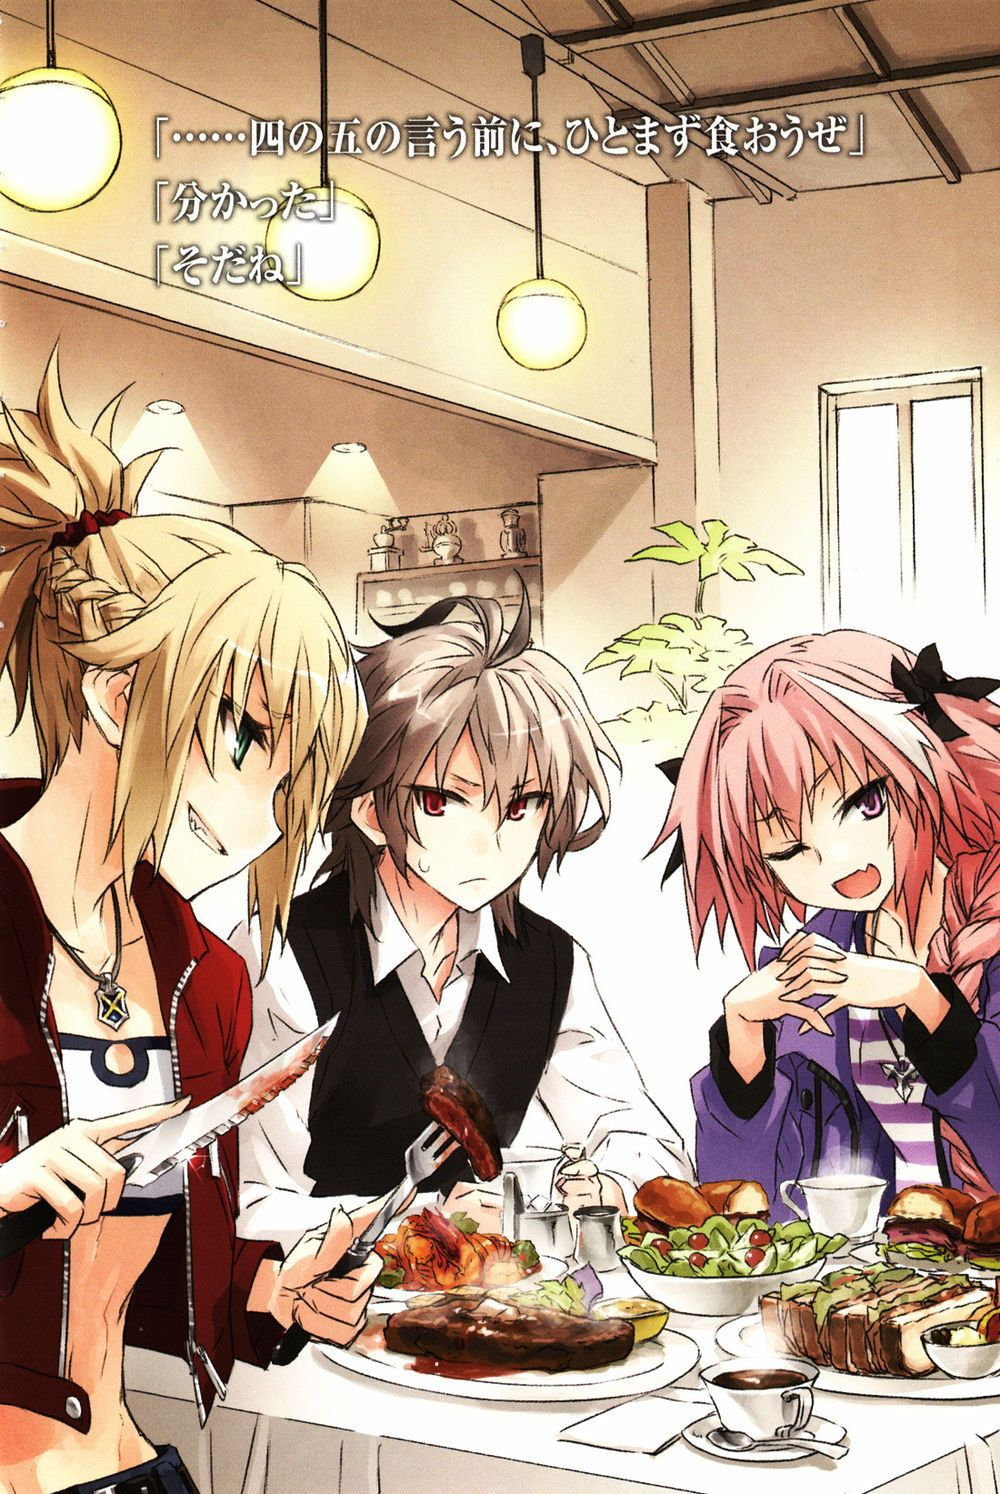 Sieg Astolfo Fate Fate Apocrypha Mordred Fate Stay Night